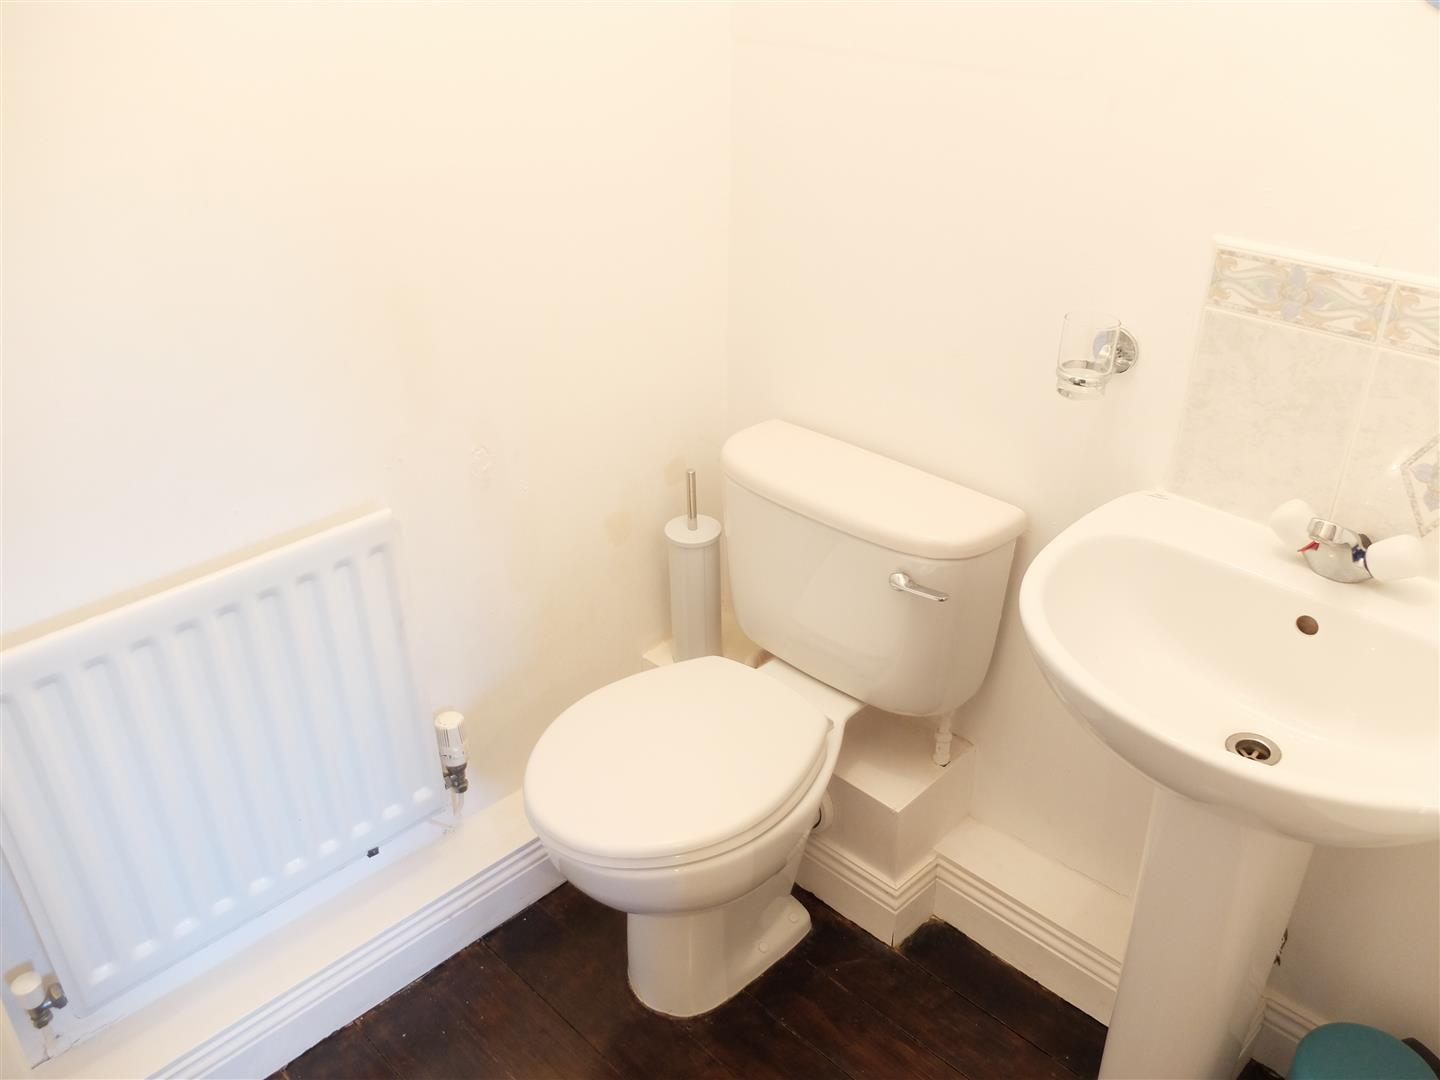 3 Bedrooms House - Semi-Detached On Sale 91 Larch Drive Carlisle 169,950